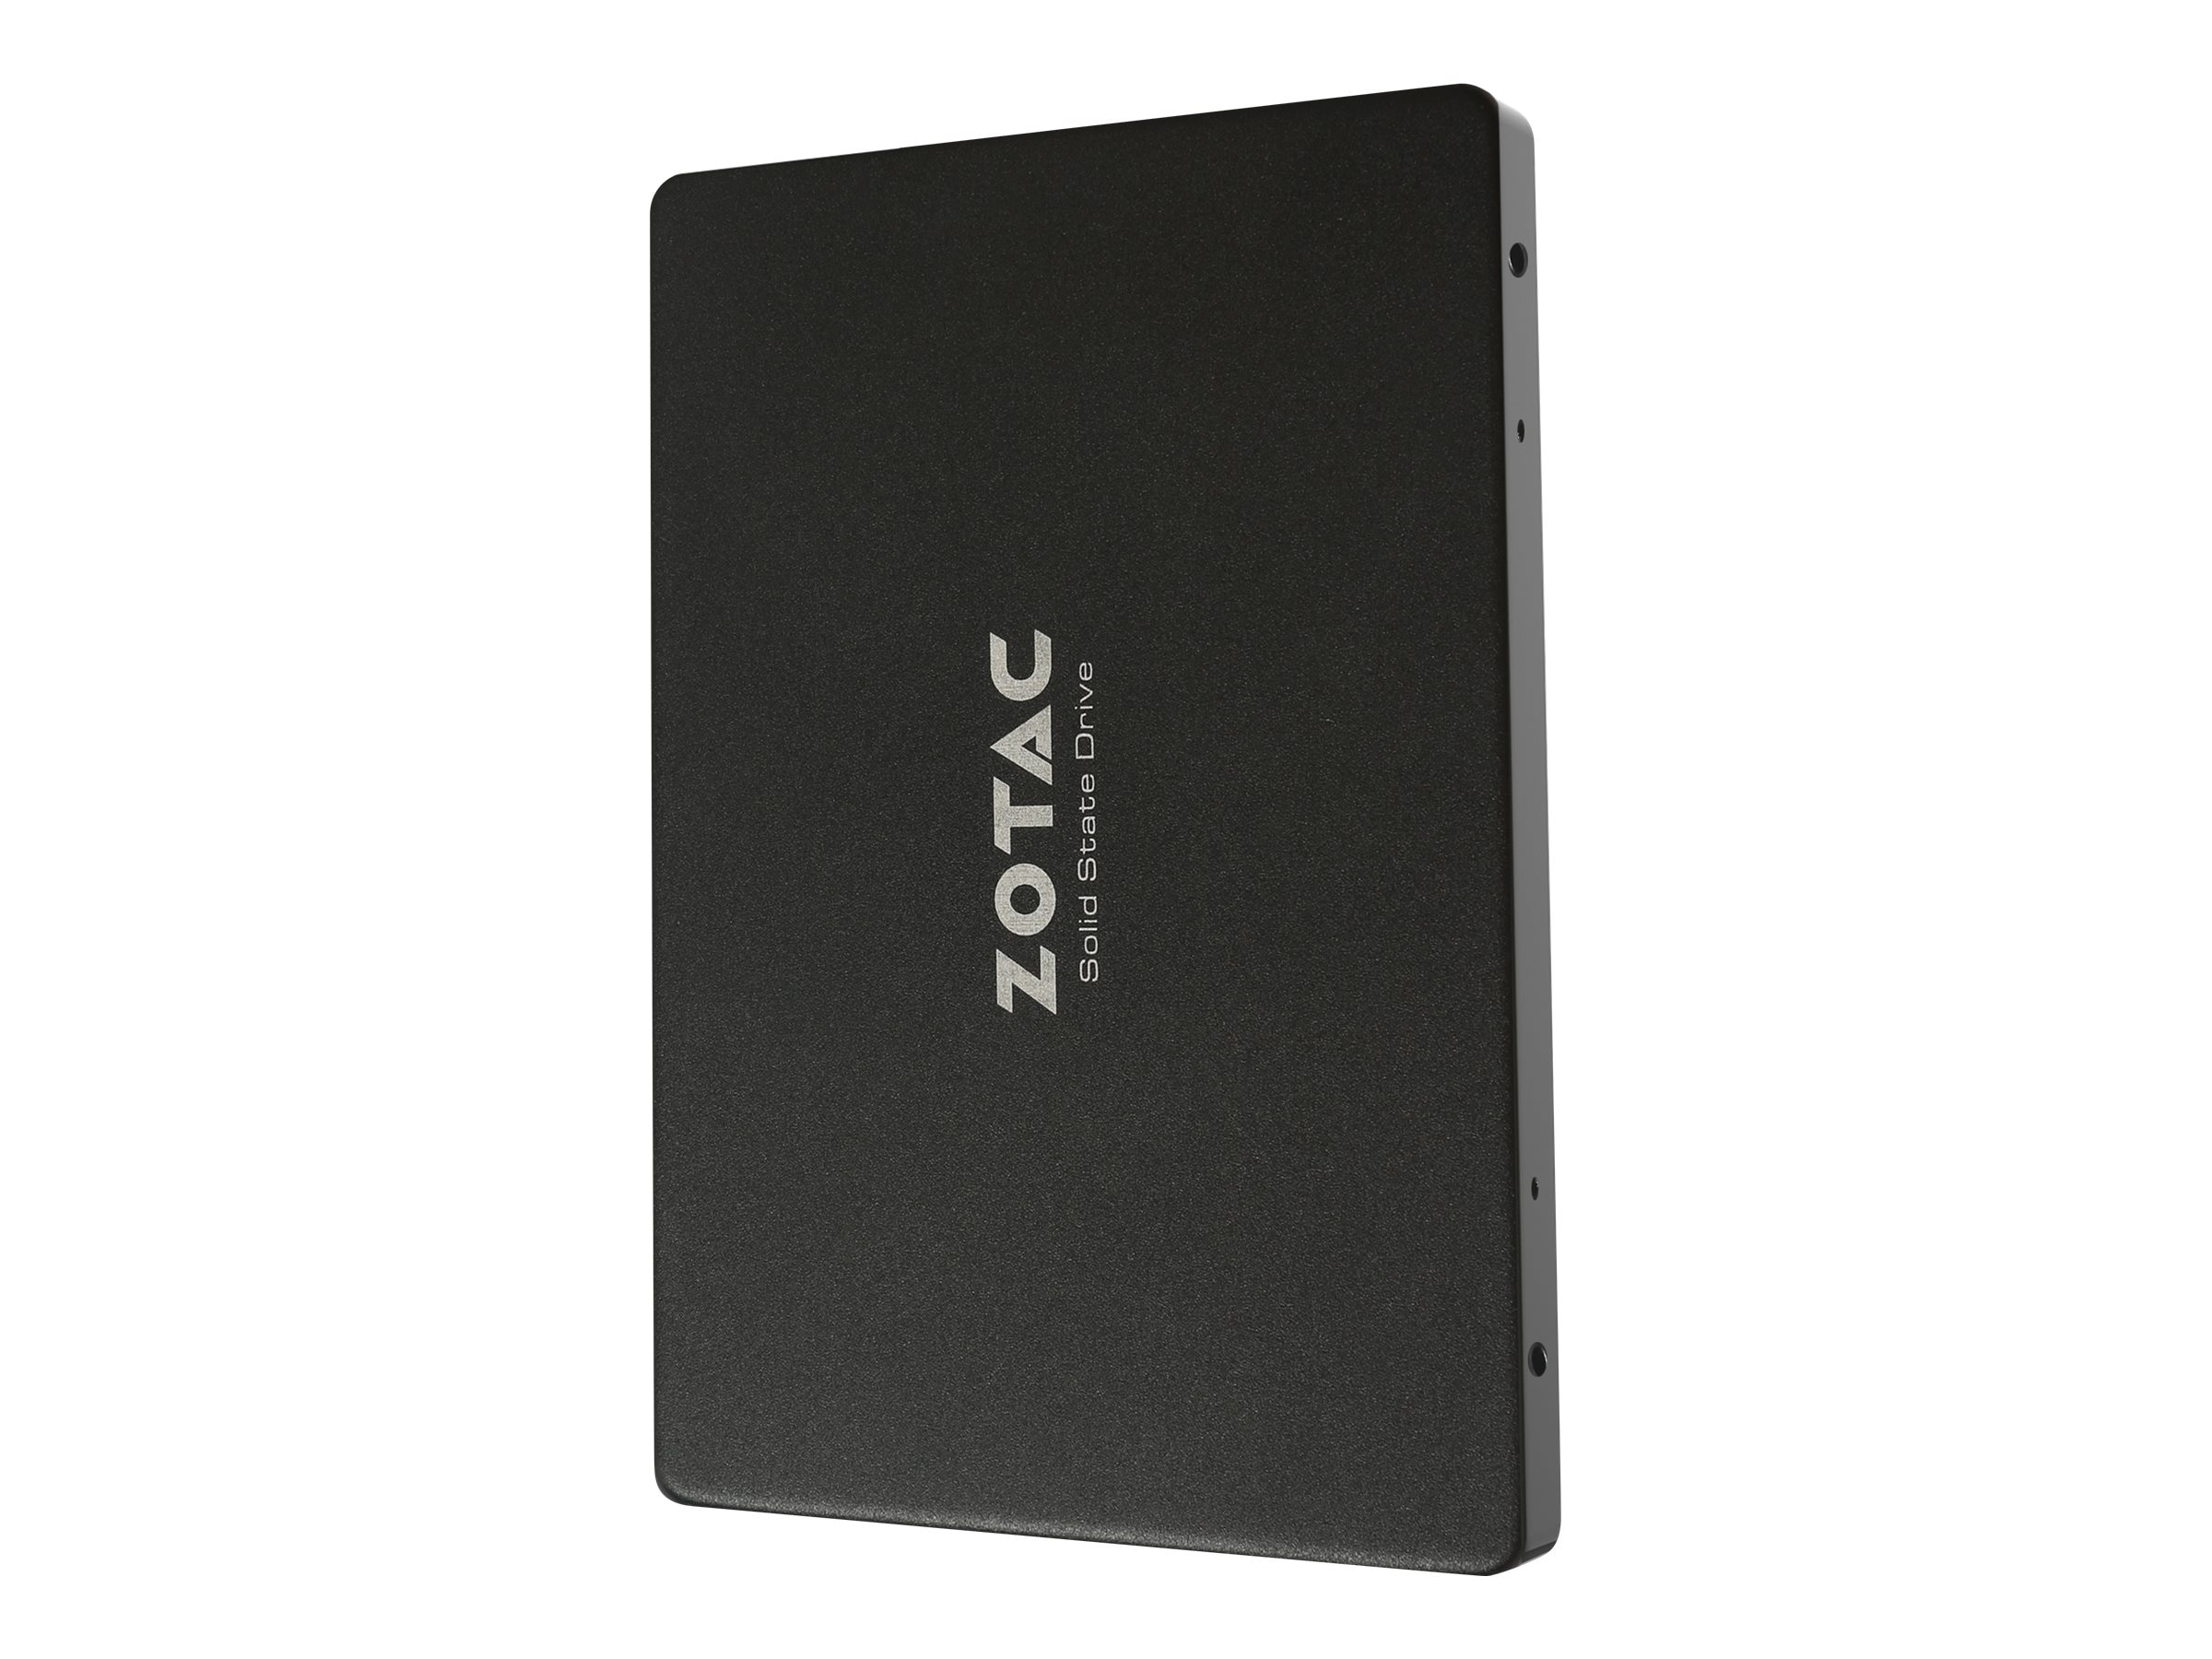 Zotac 960GB SATA 6Gb s TLC 2.5 Internal Solid State Drive